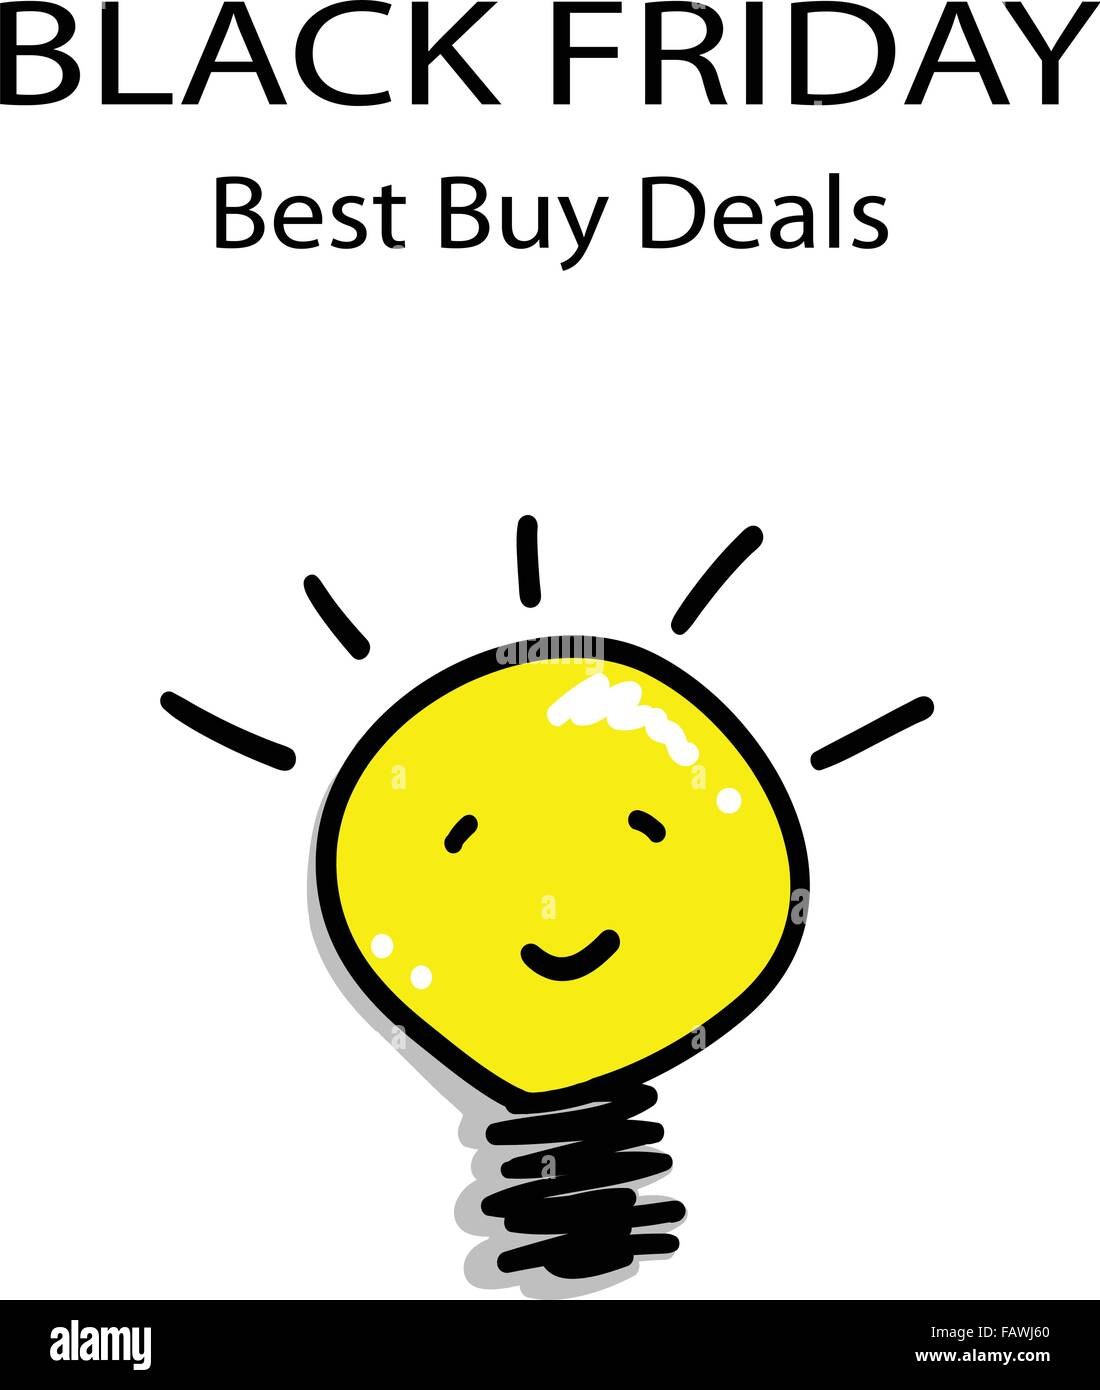 Black Friday Best Buy Deal is A Special Promotion for Start ...